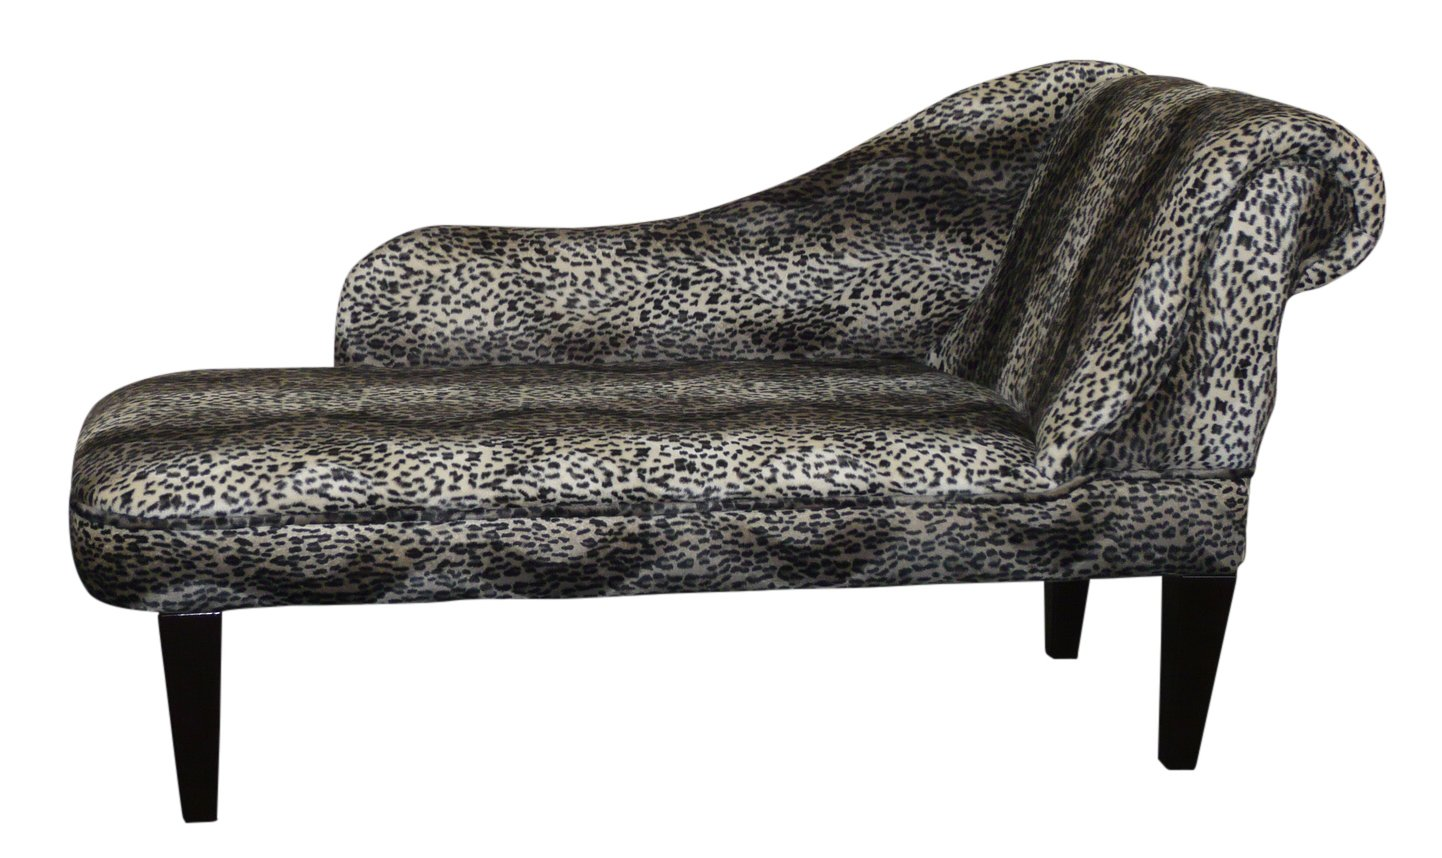 archaicawful print chair contemporary lounge chaise images leopard furniture design fabric